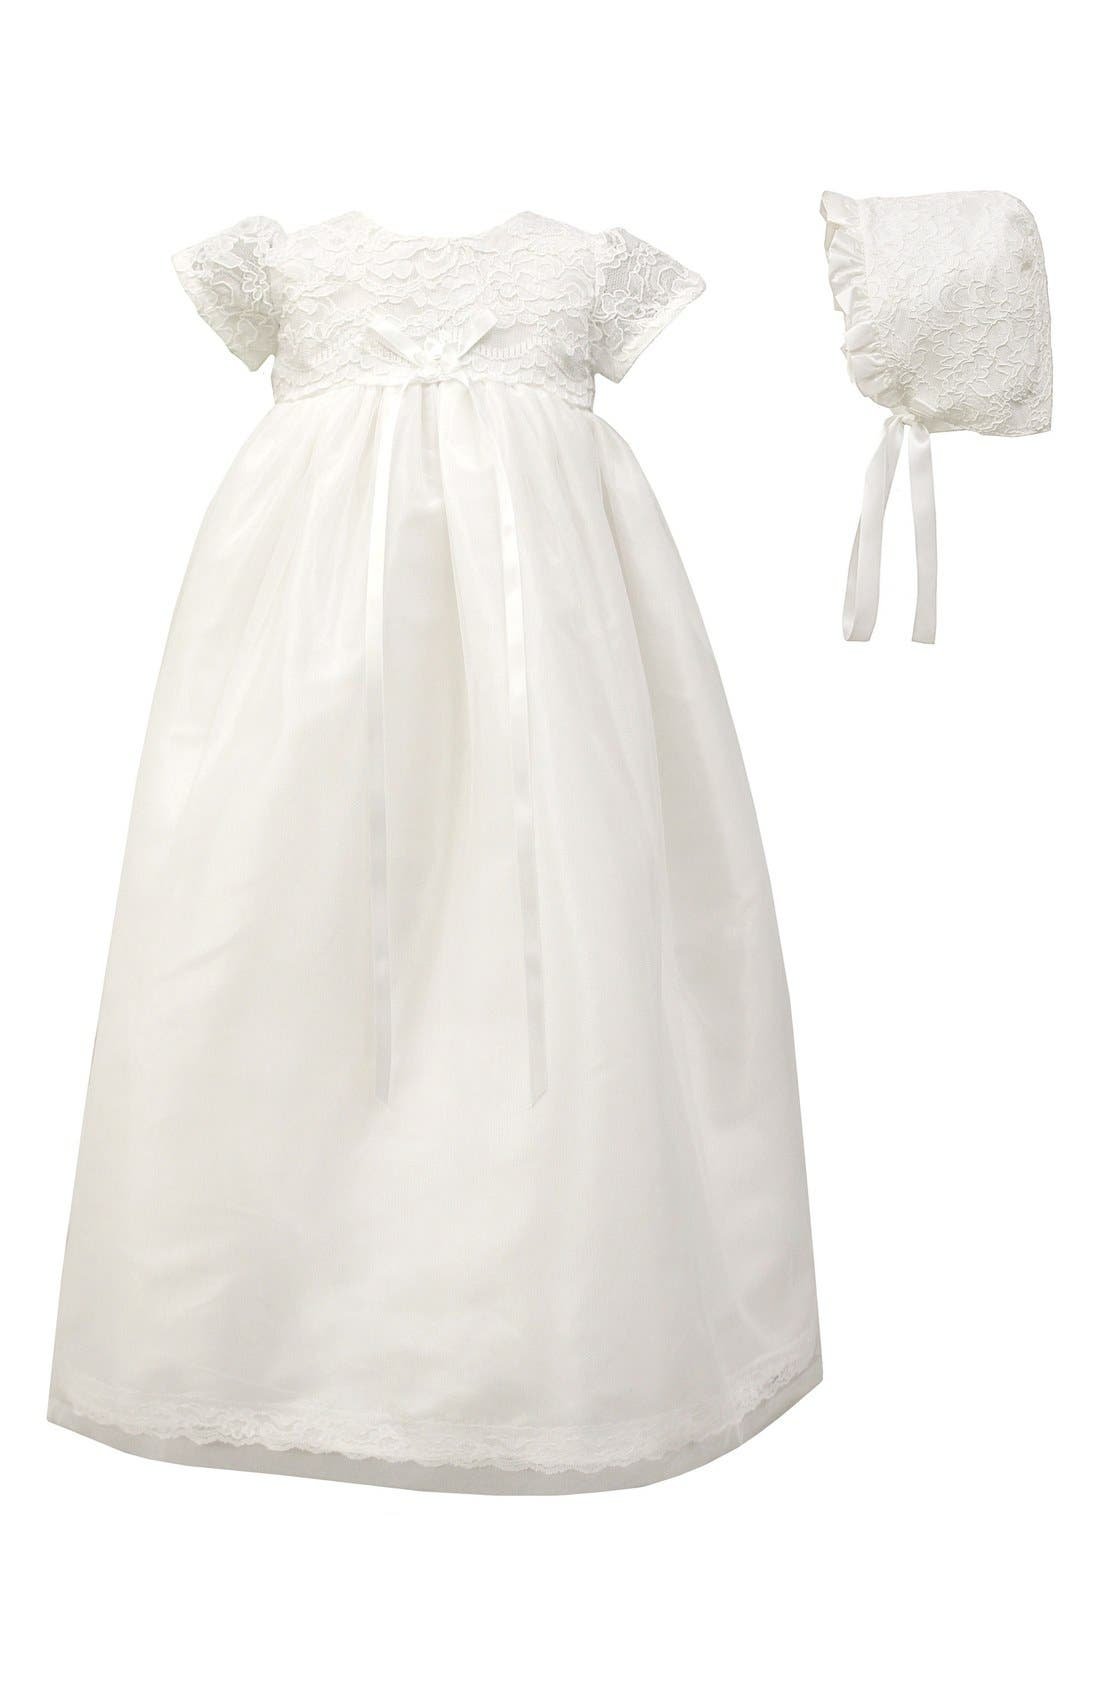 Scalloped Lace Christening Gown & Bonnet Set,                         Main,                         color, 100